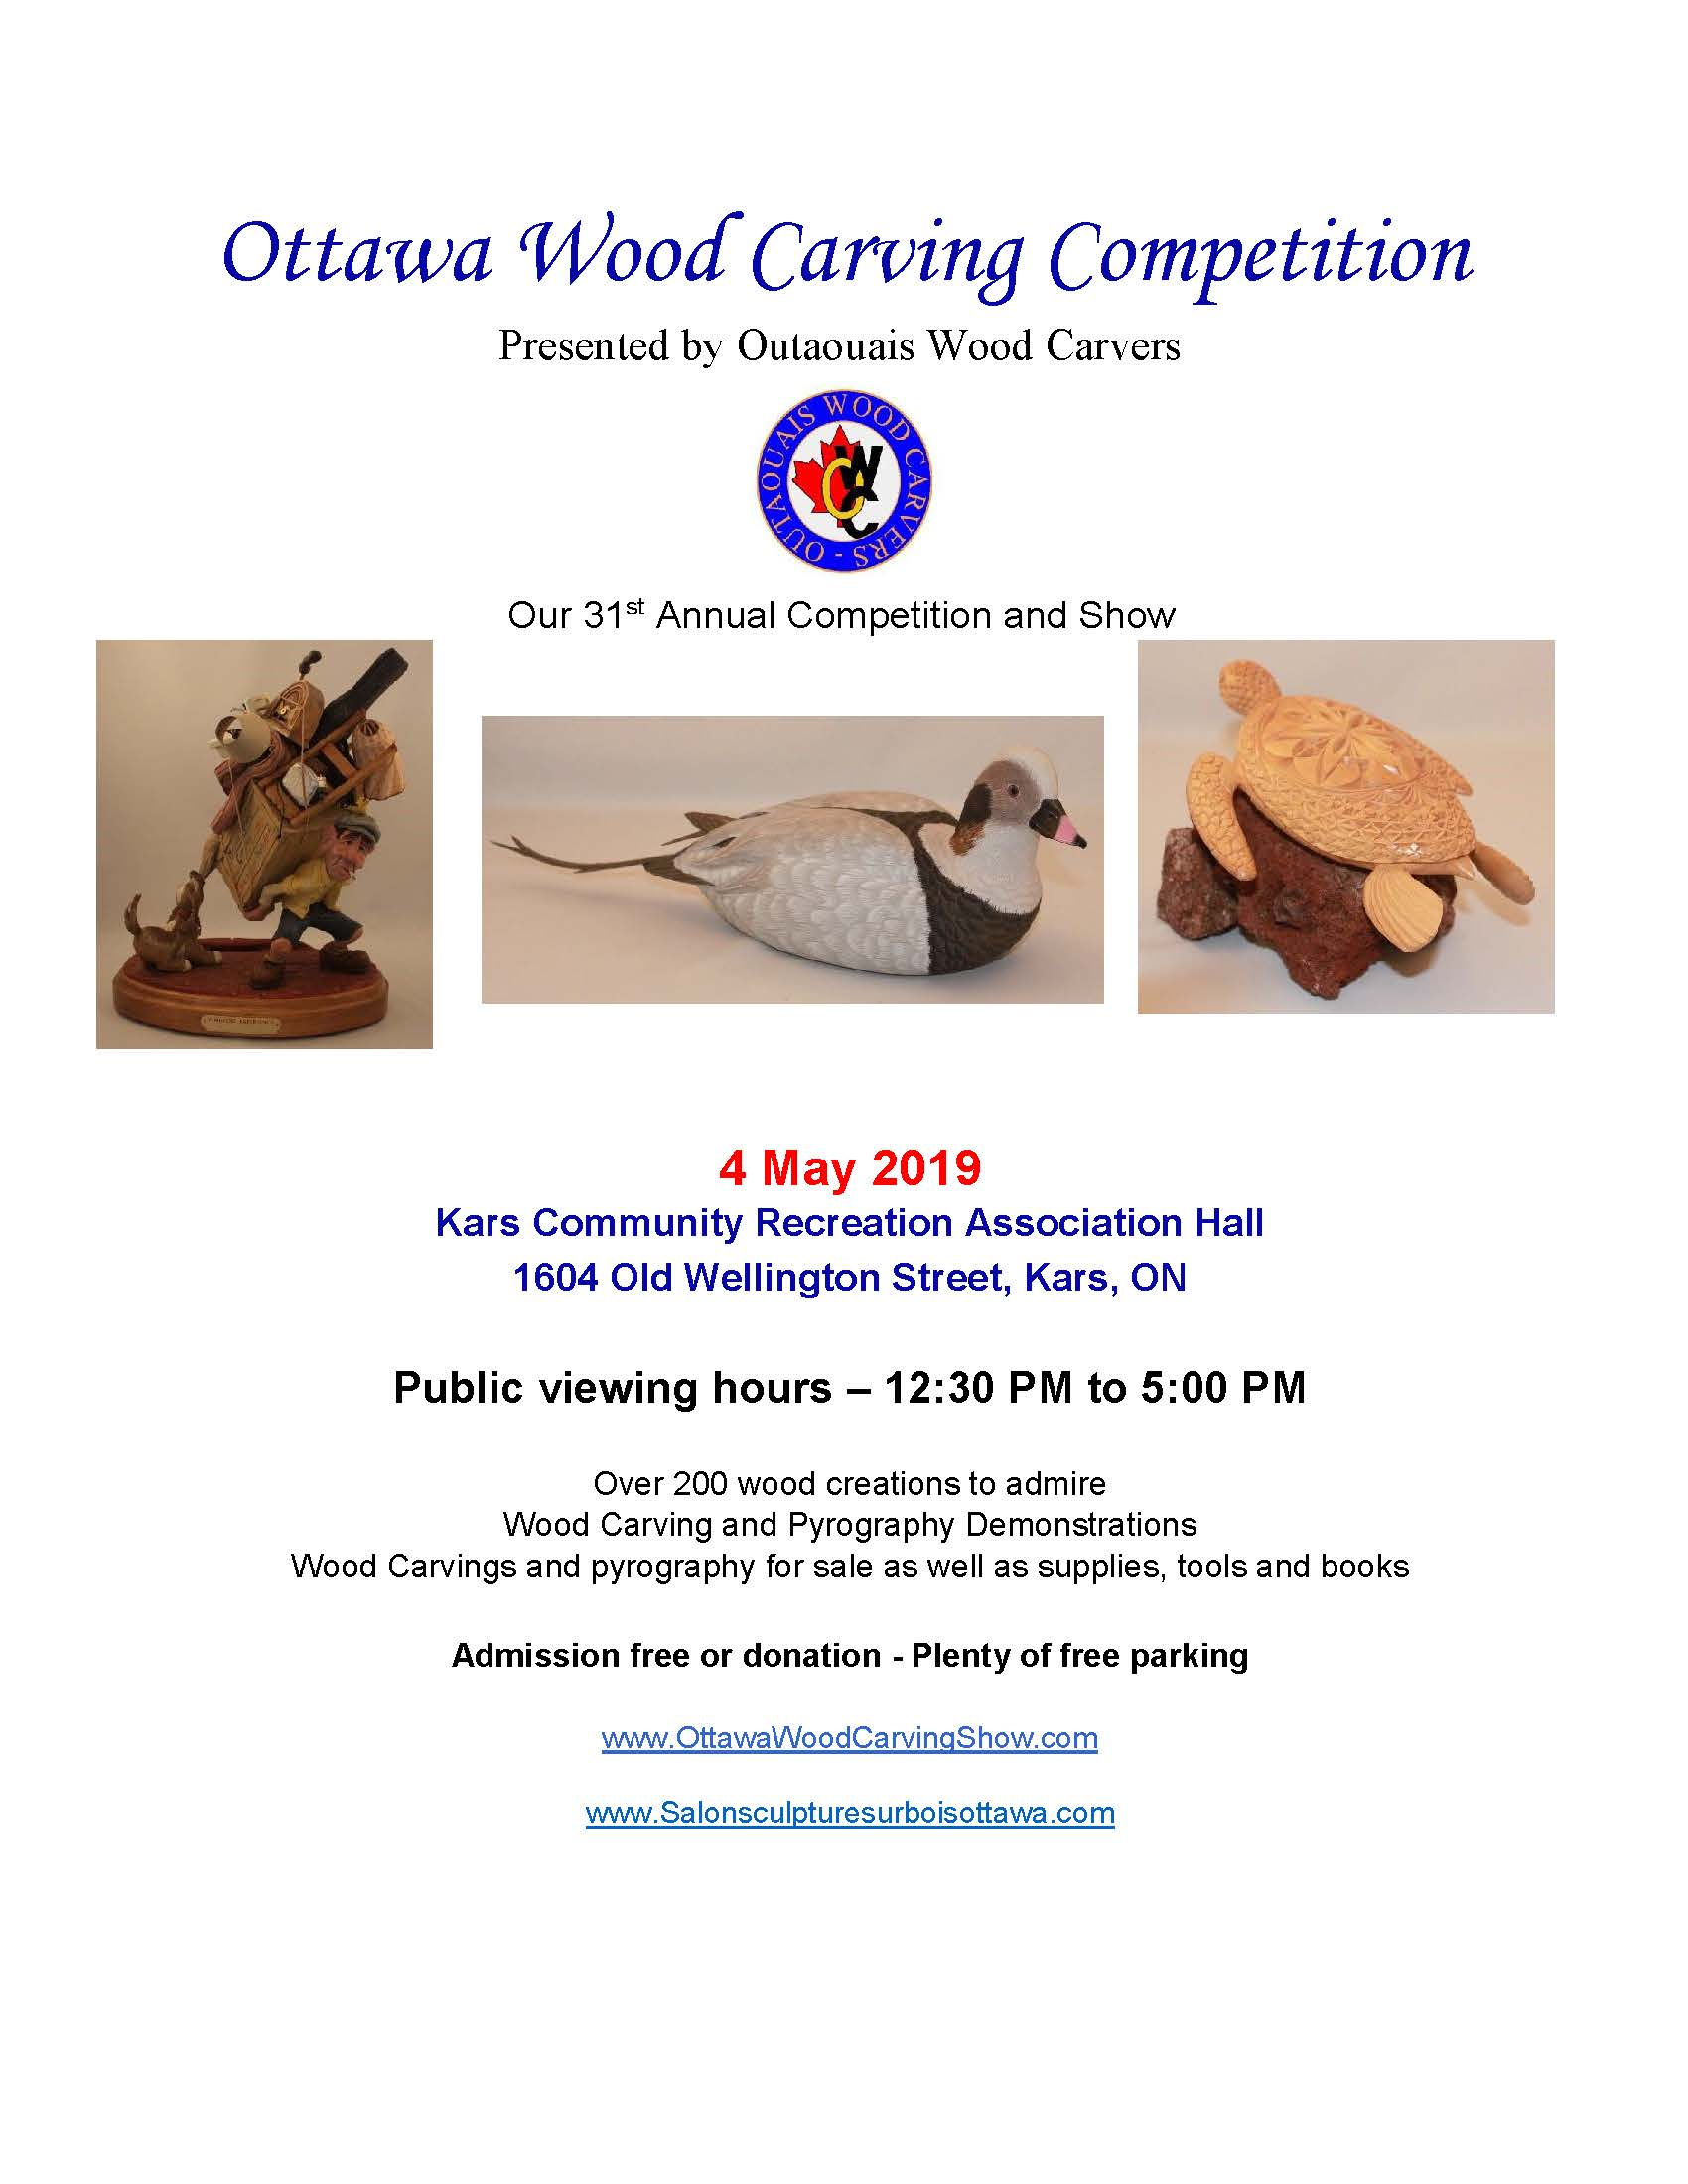 31st Annual Ottawa Wood Carving Competition — Rideau-Goulbourn